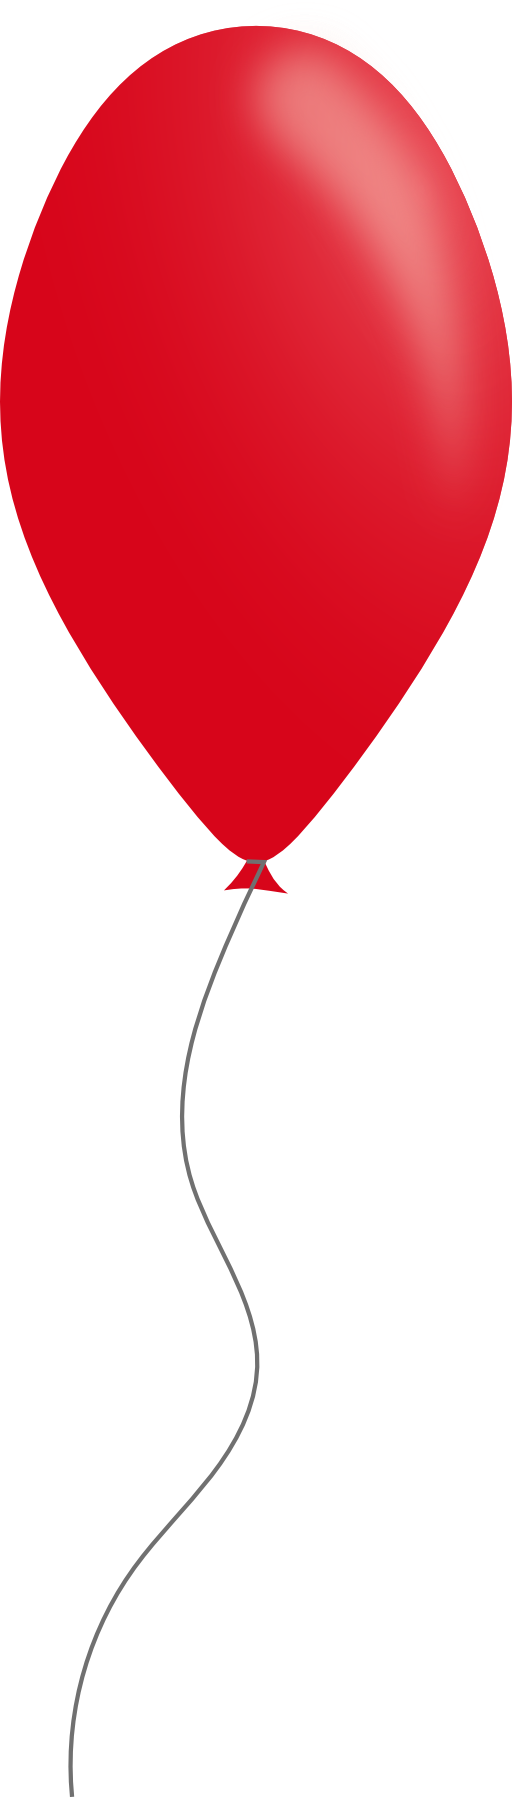 Red Balloon Clipart Red Balloon Clipart